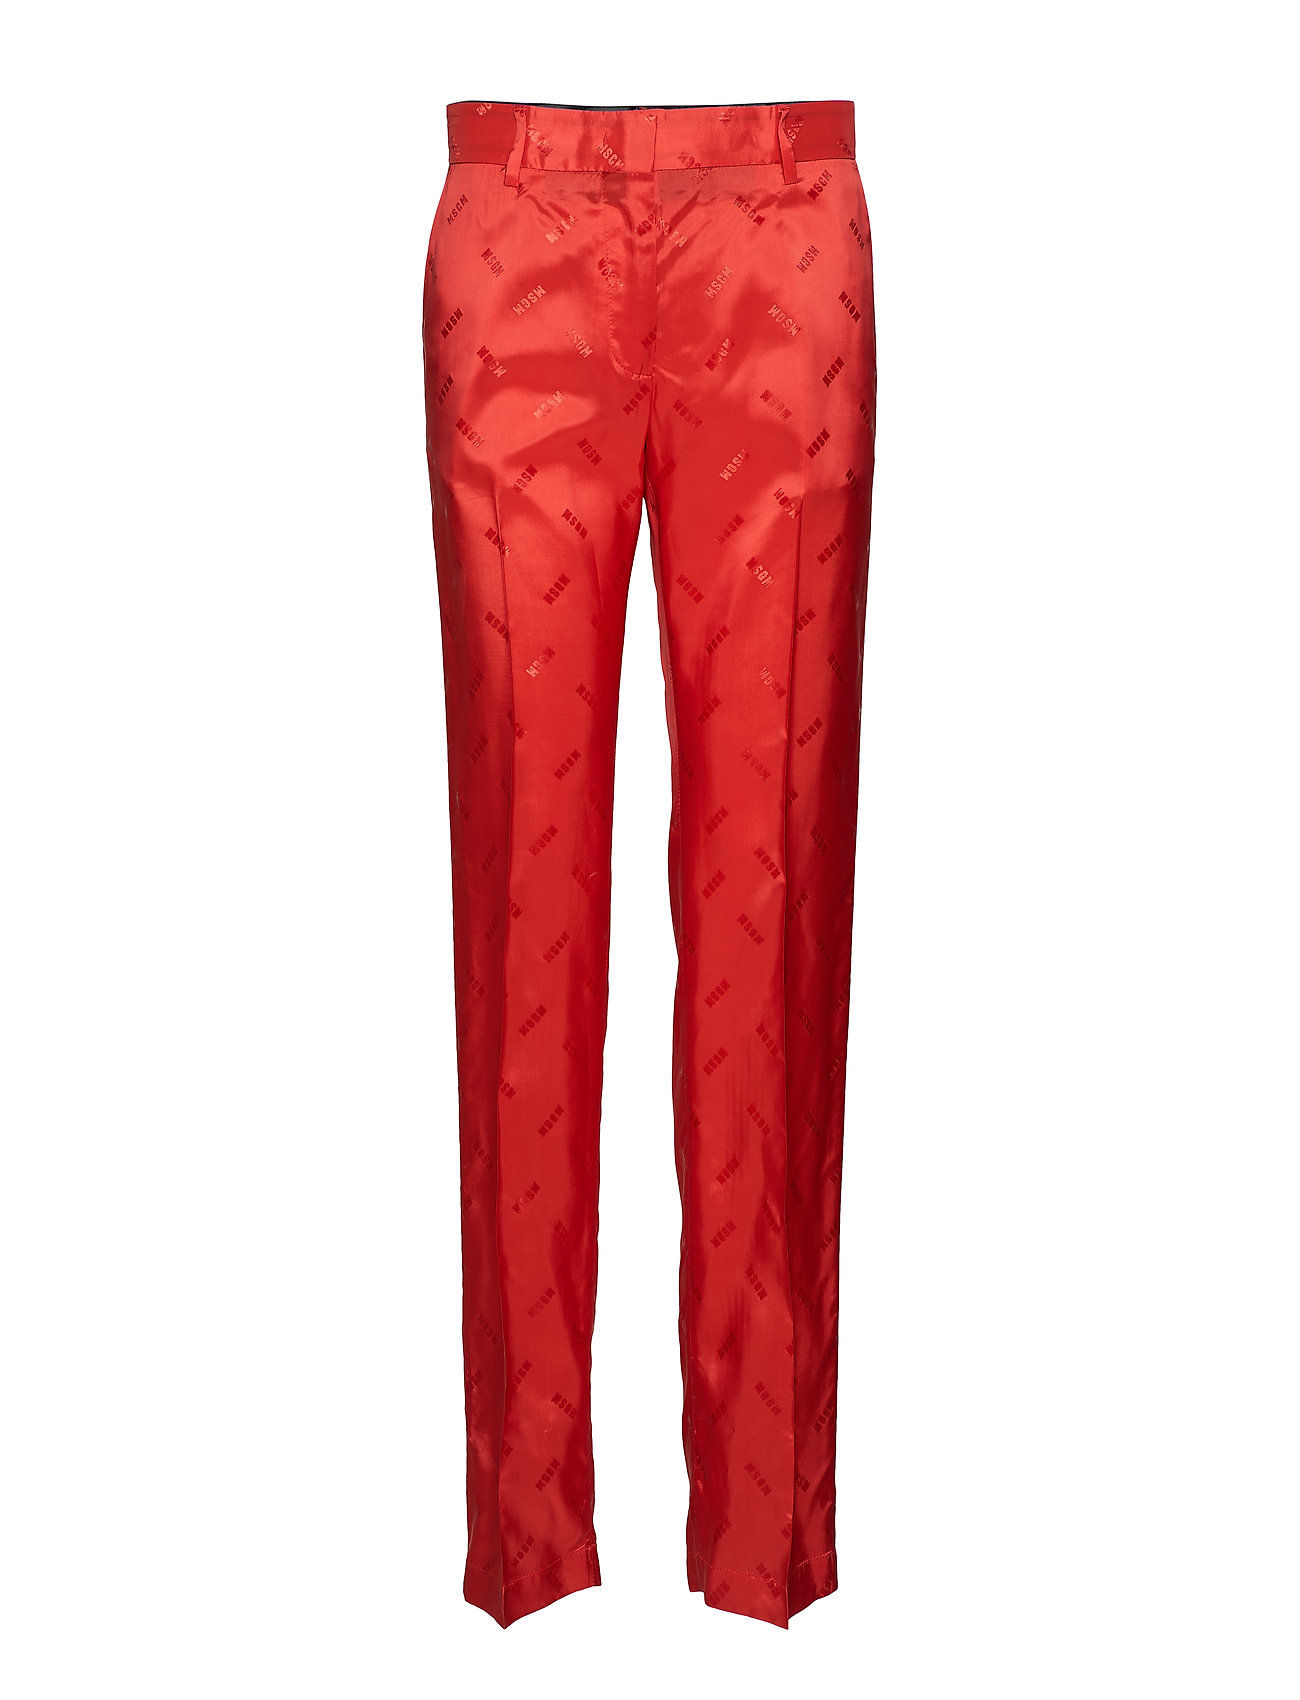 MSGM PANT - RED